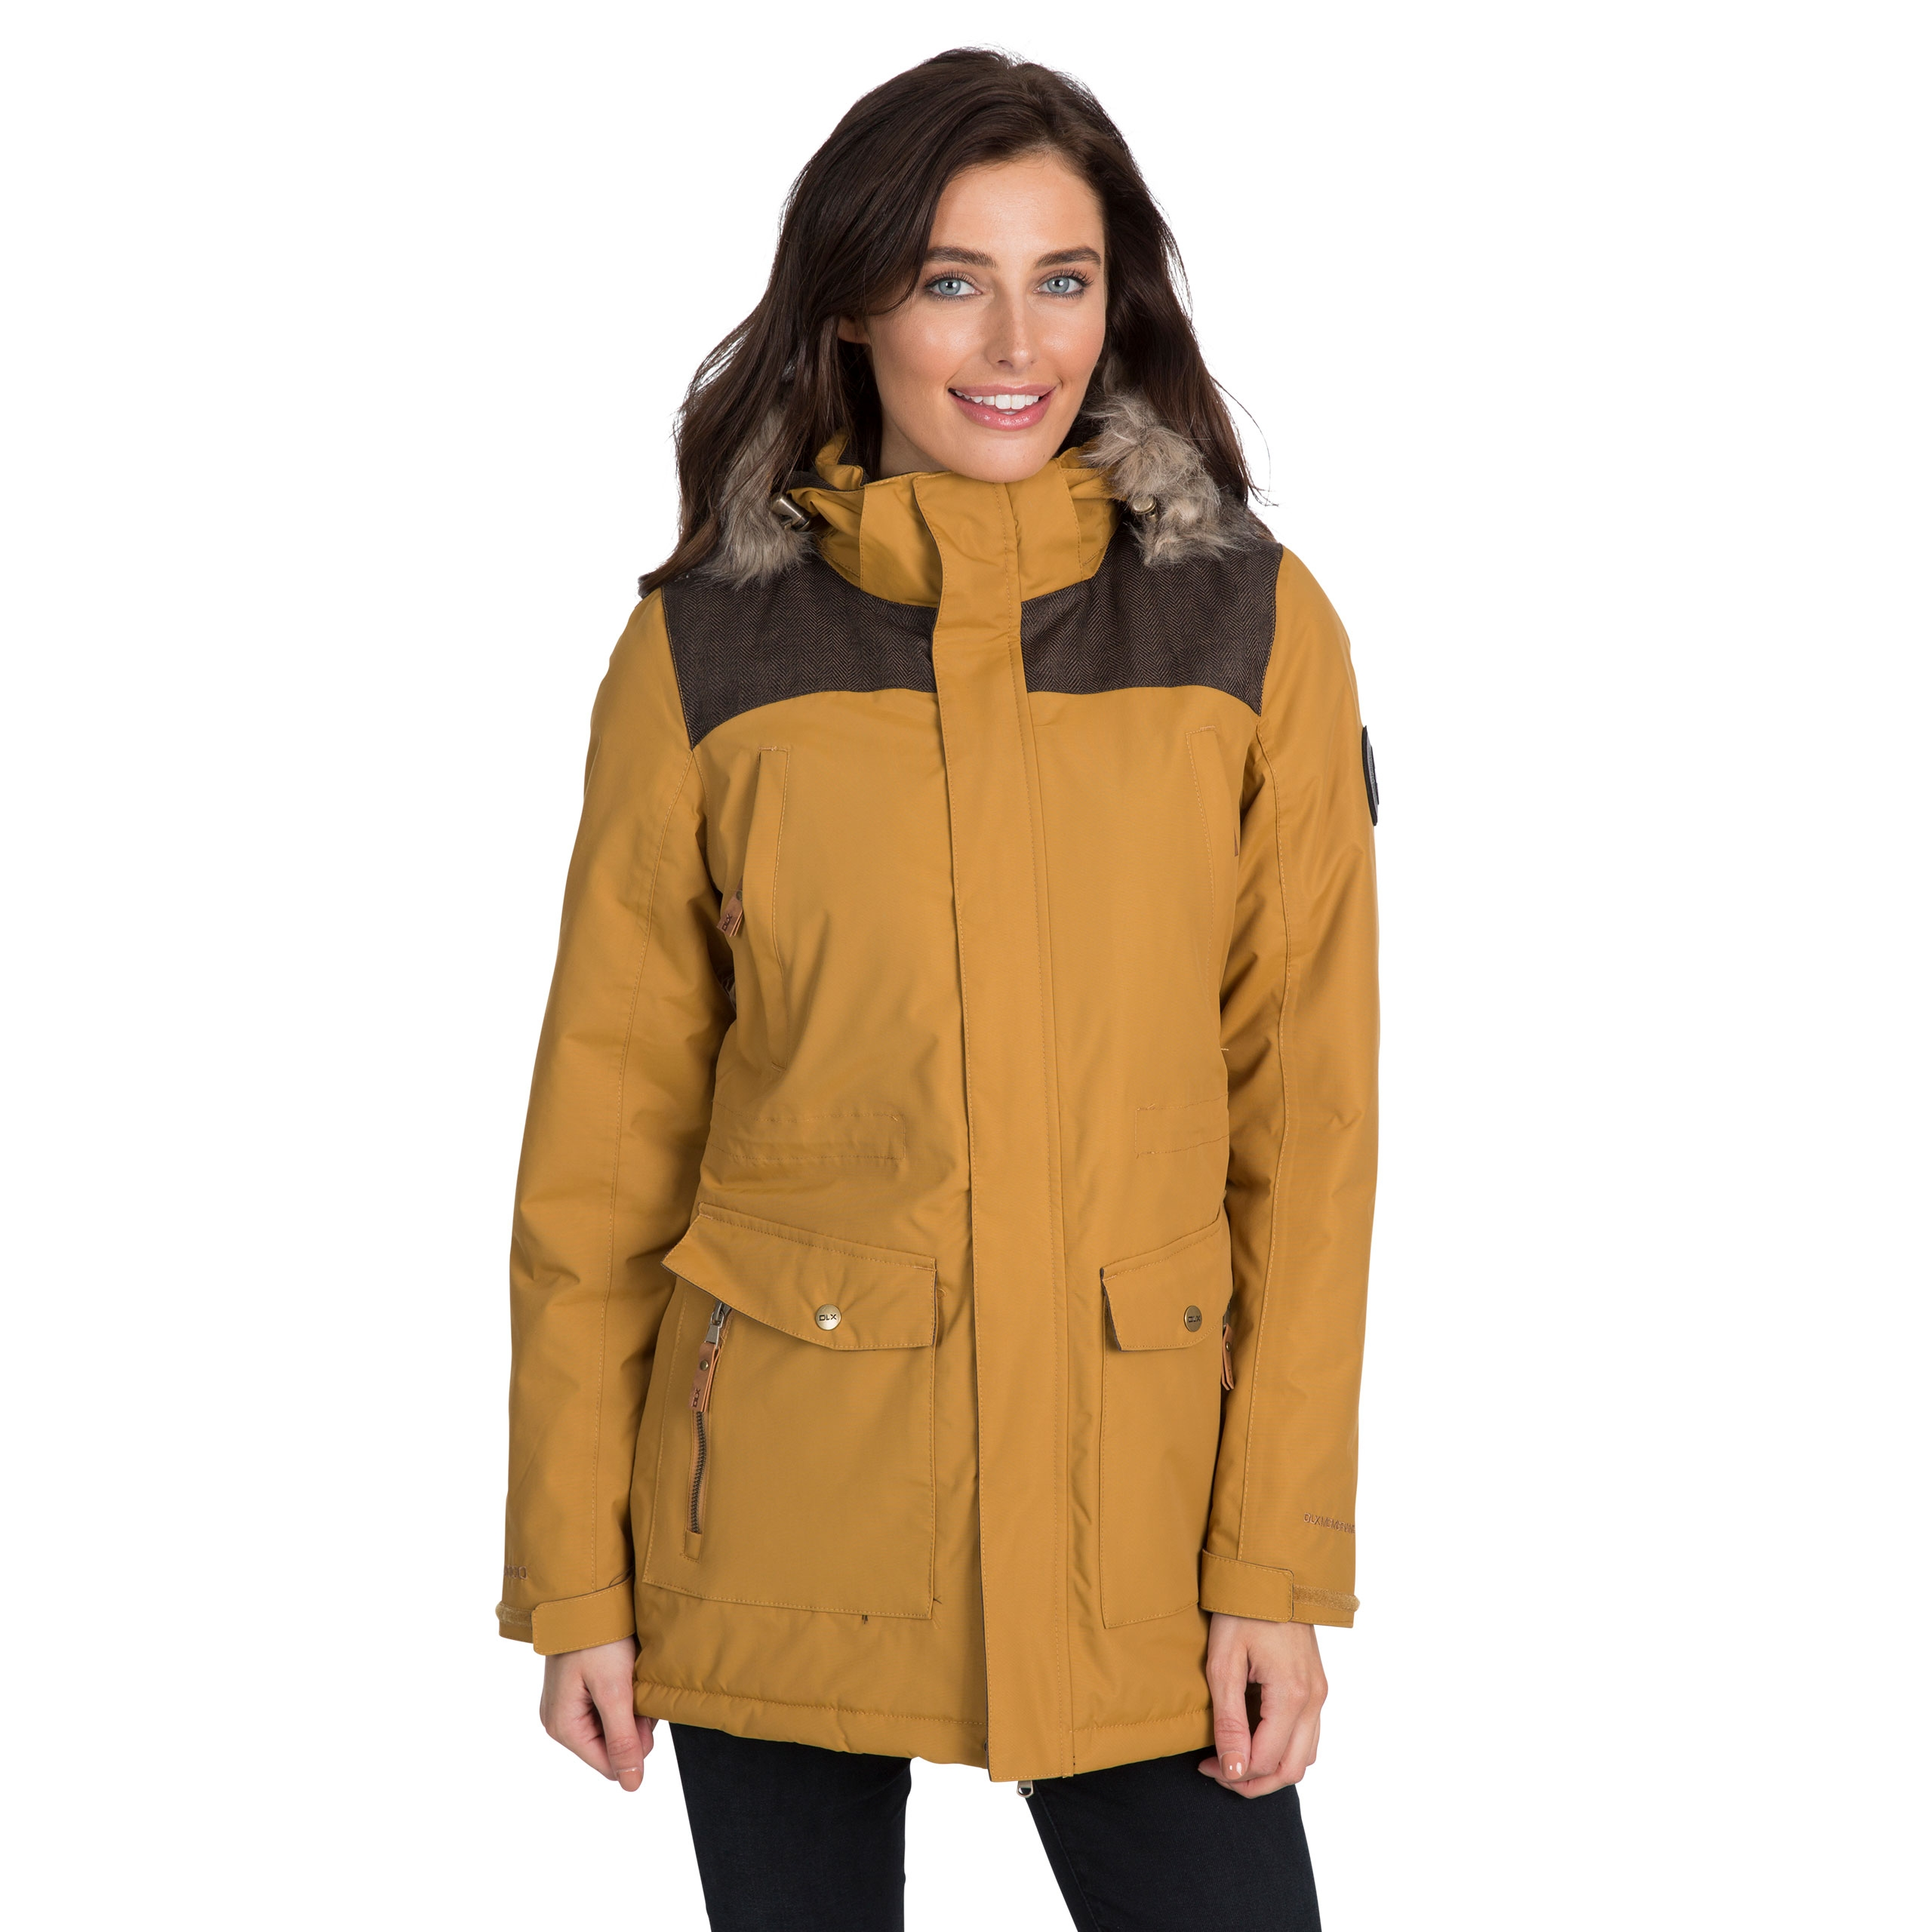 Rosario Womens Dlx Waterproof Parka Jacket